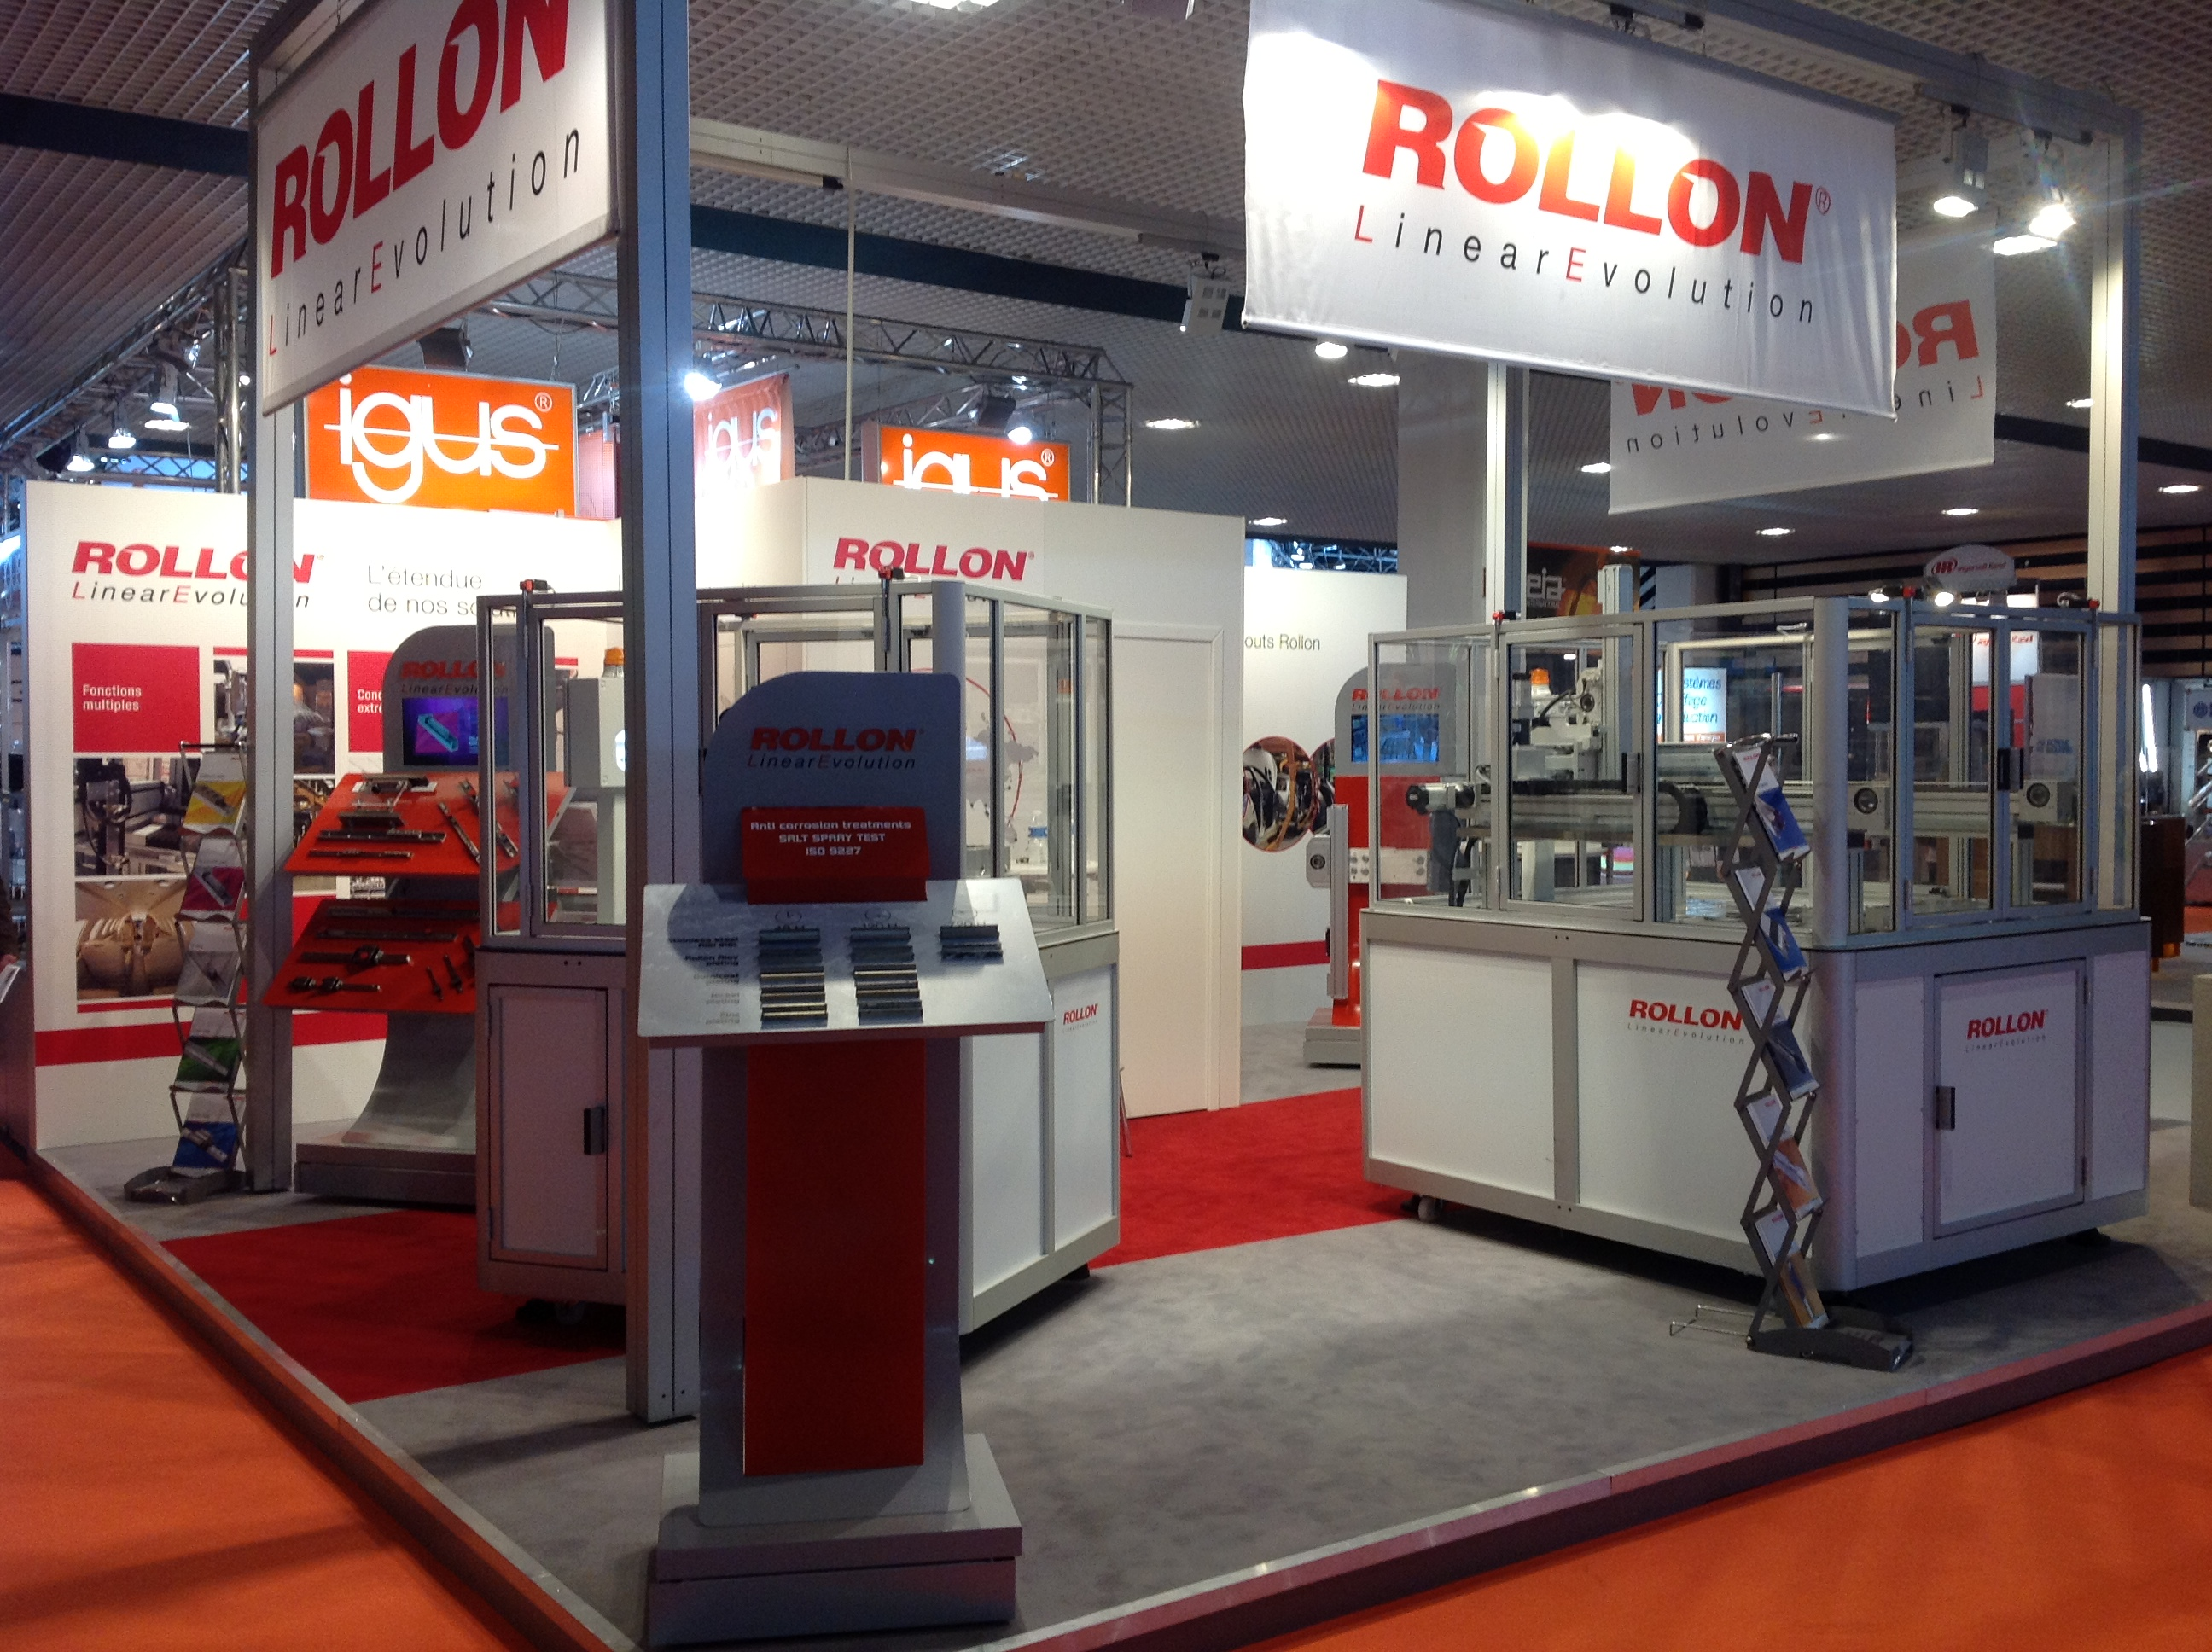 News rollon exposant l incontournable salon de l for Salon machine outil paris